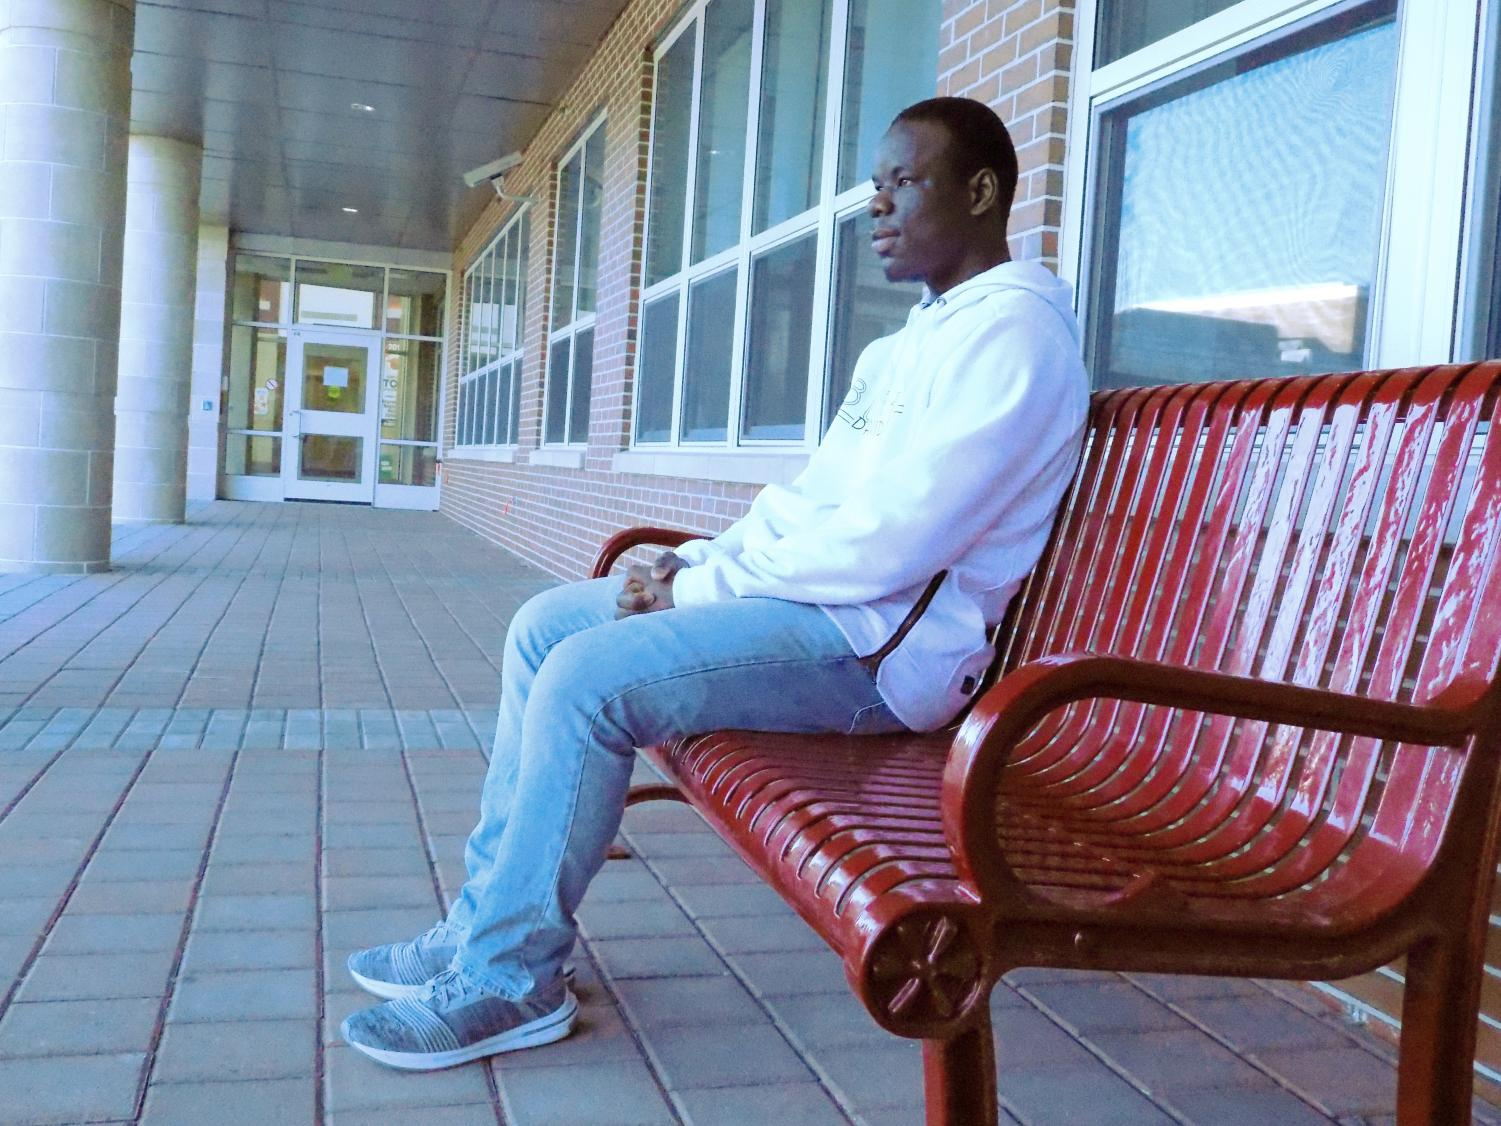 Senior Abbass Kamara works diligently to support his family after immigrating to Northborough from Sierra Leone.